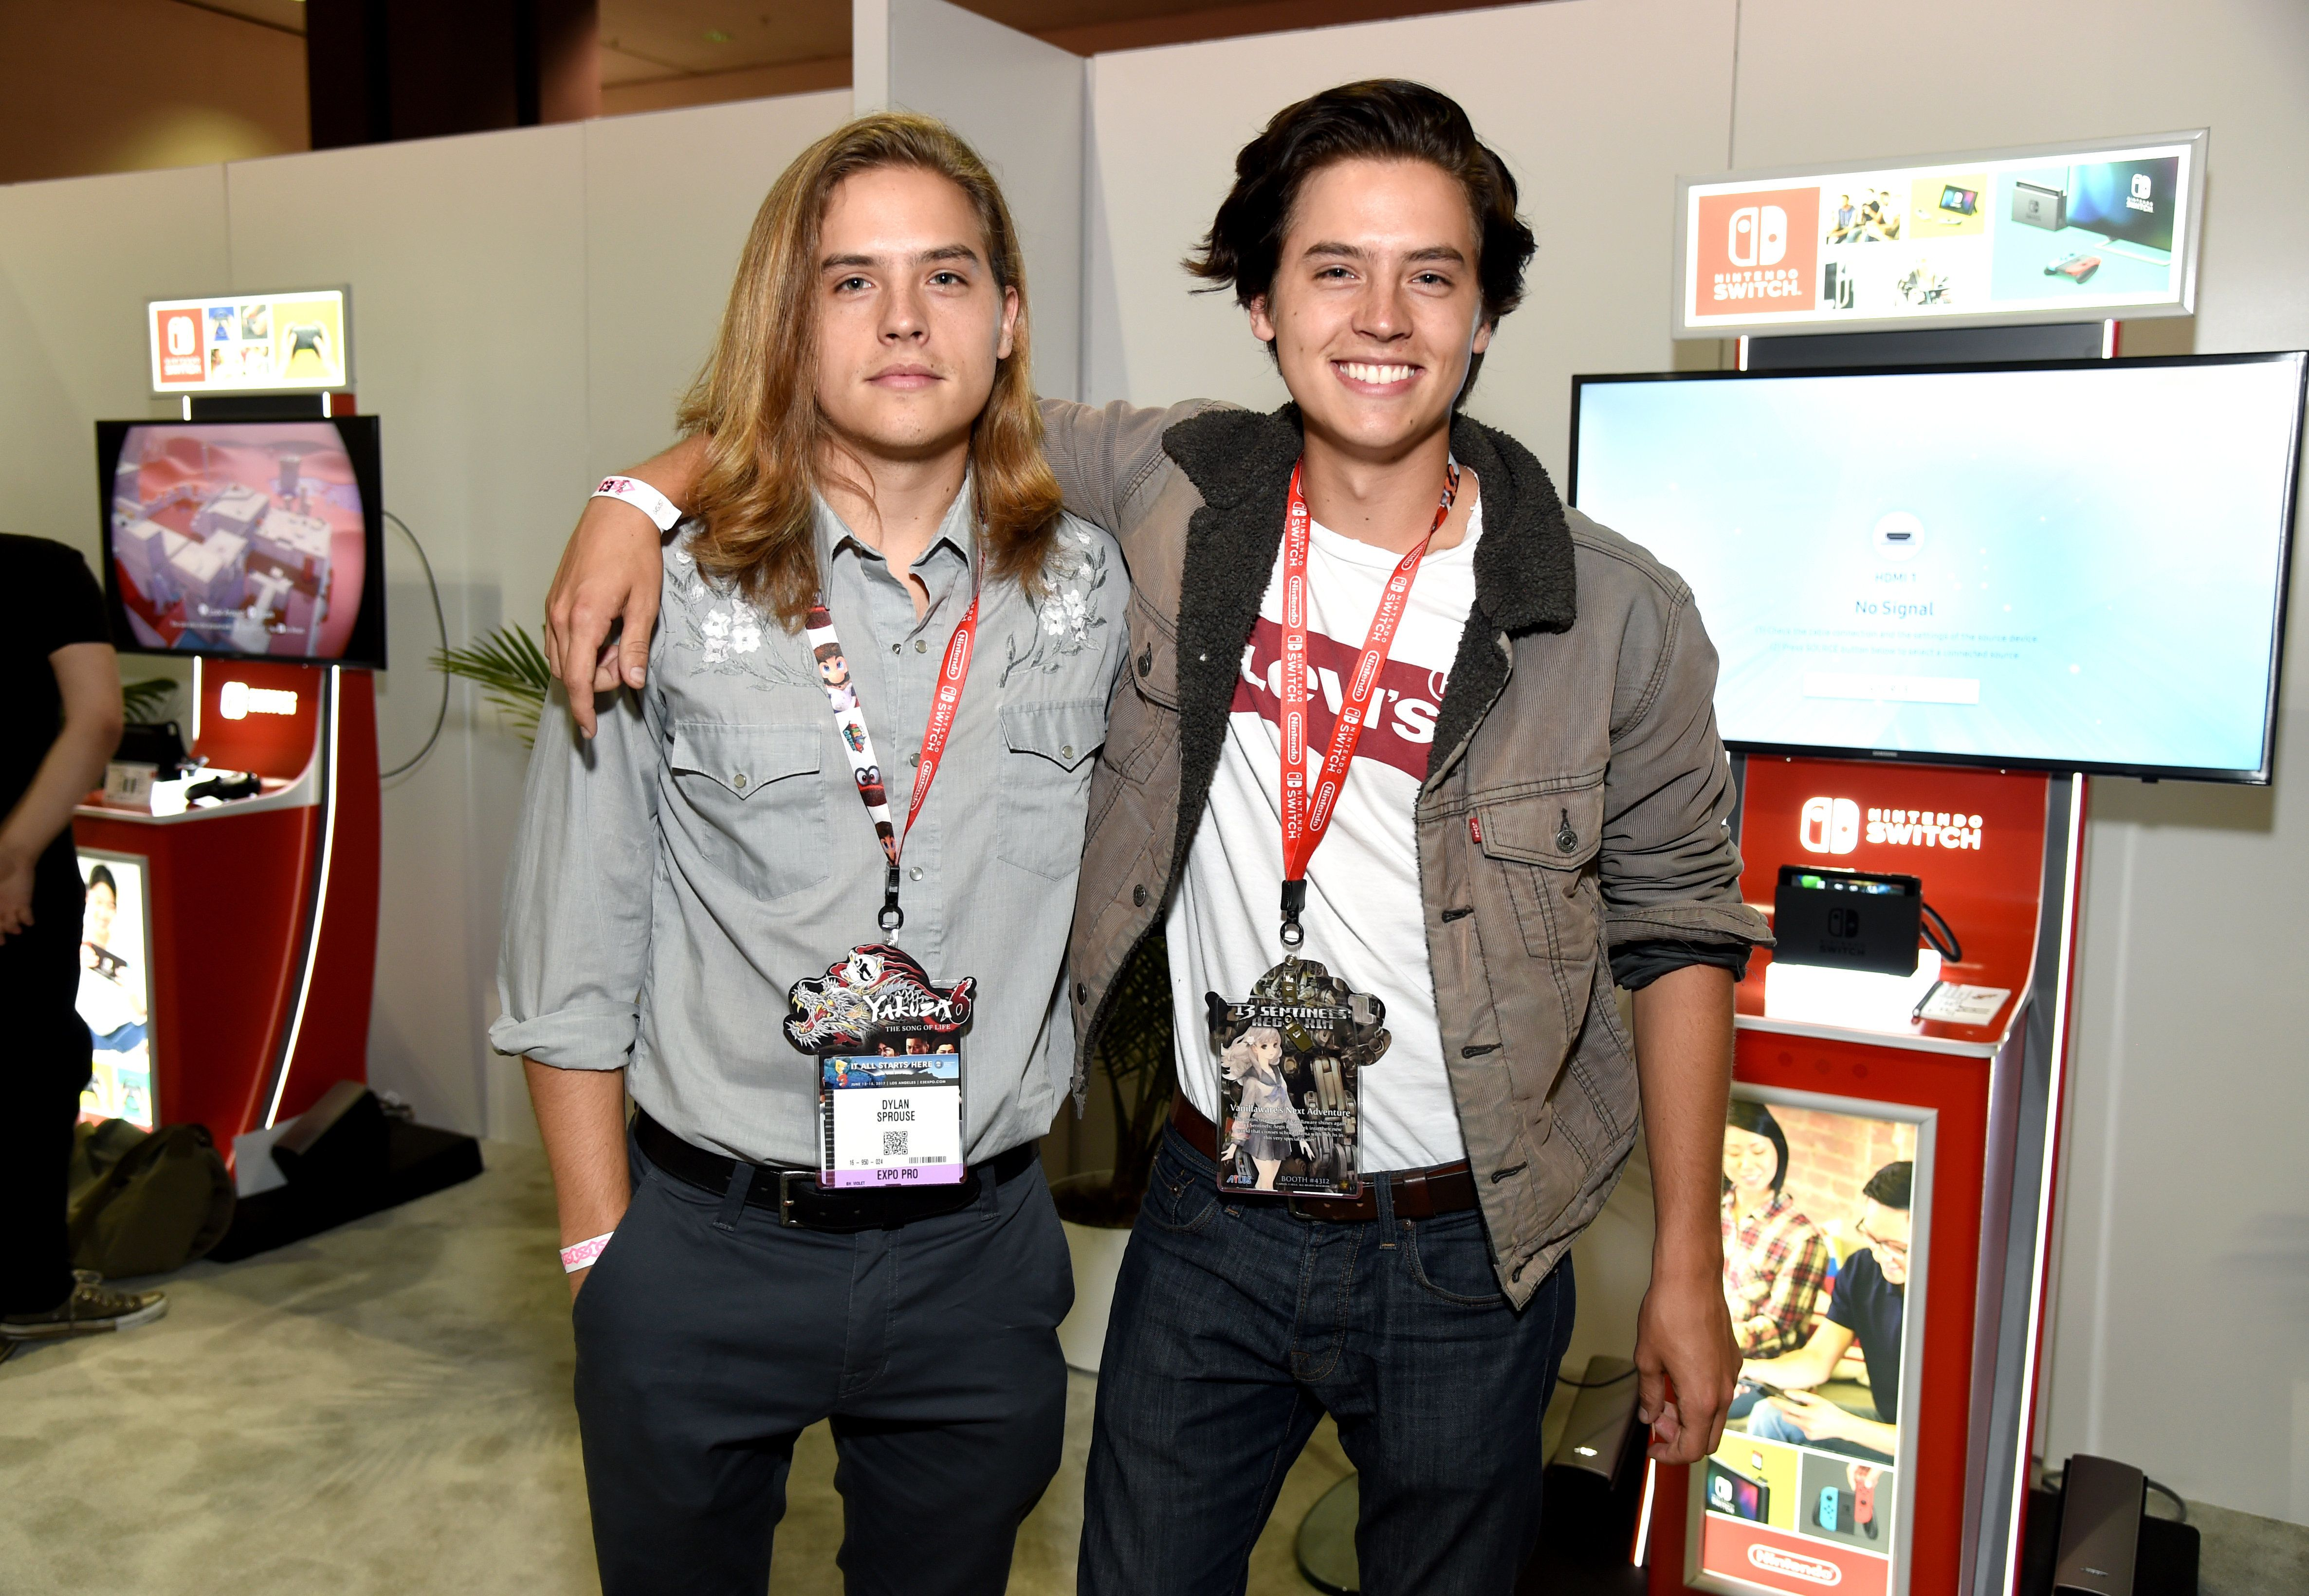 LOS ANGELES, CA - JUNE 13: Dylan Sprouse and Cole Sprouse visit the Nintendo booth at the 2017 E3 Gaming Convention at Los Angeles Convention Center on June 13, 2017 in Los Angeles, California.  (Photo by Michael Kovac/Getty Images for Nintendo)